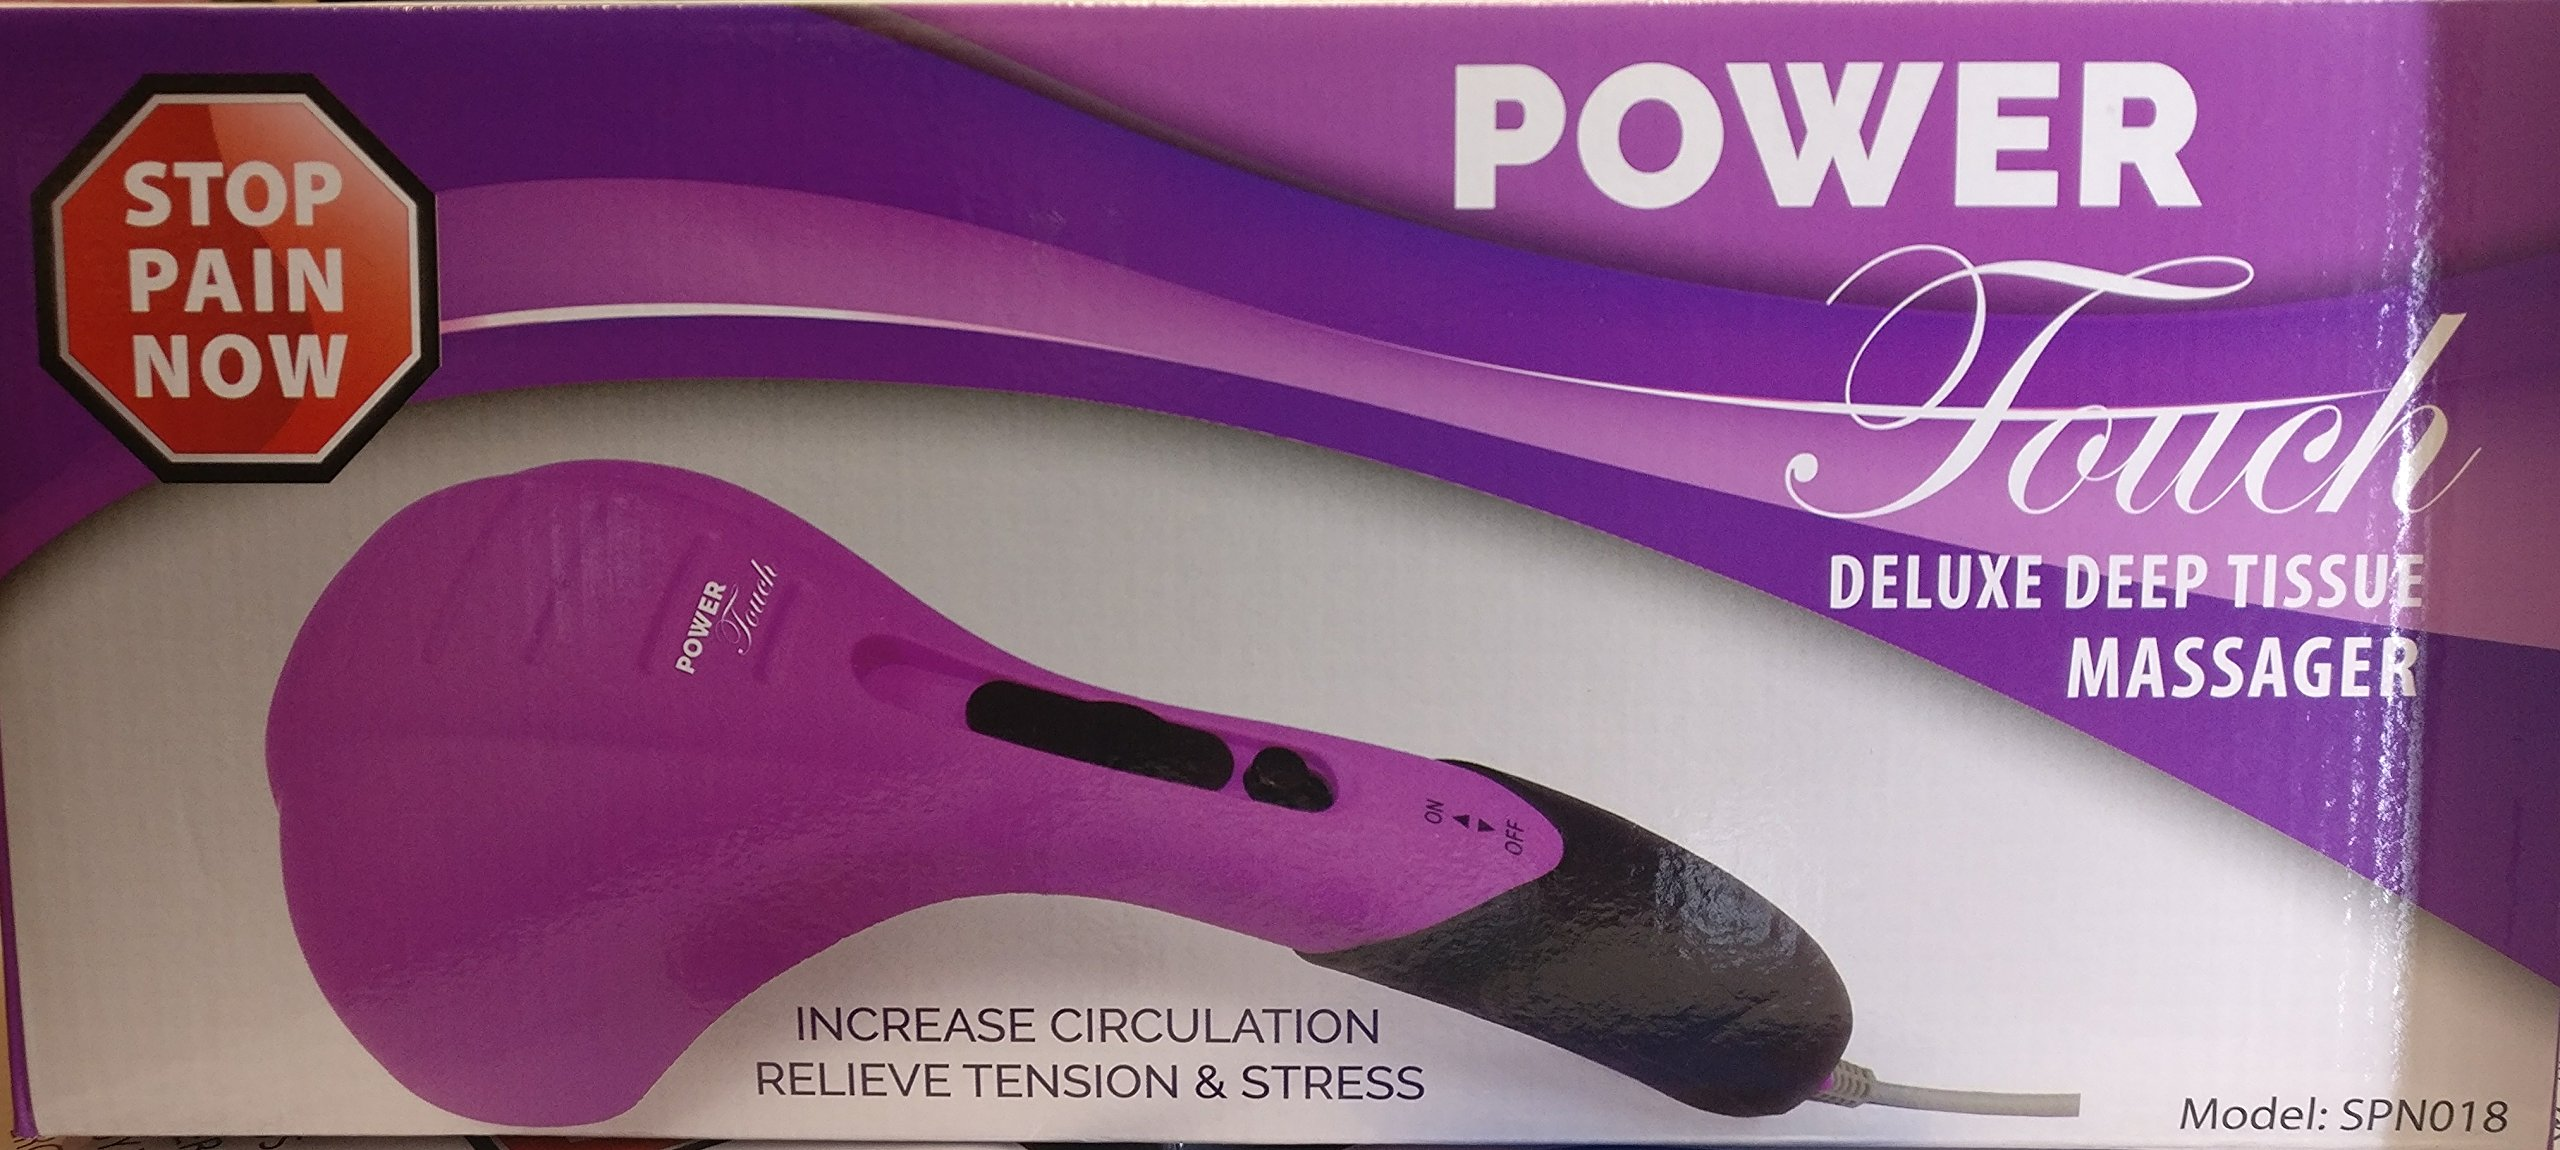 Power Touch Deluxe Deep Tissue Massager Pink